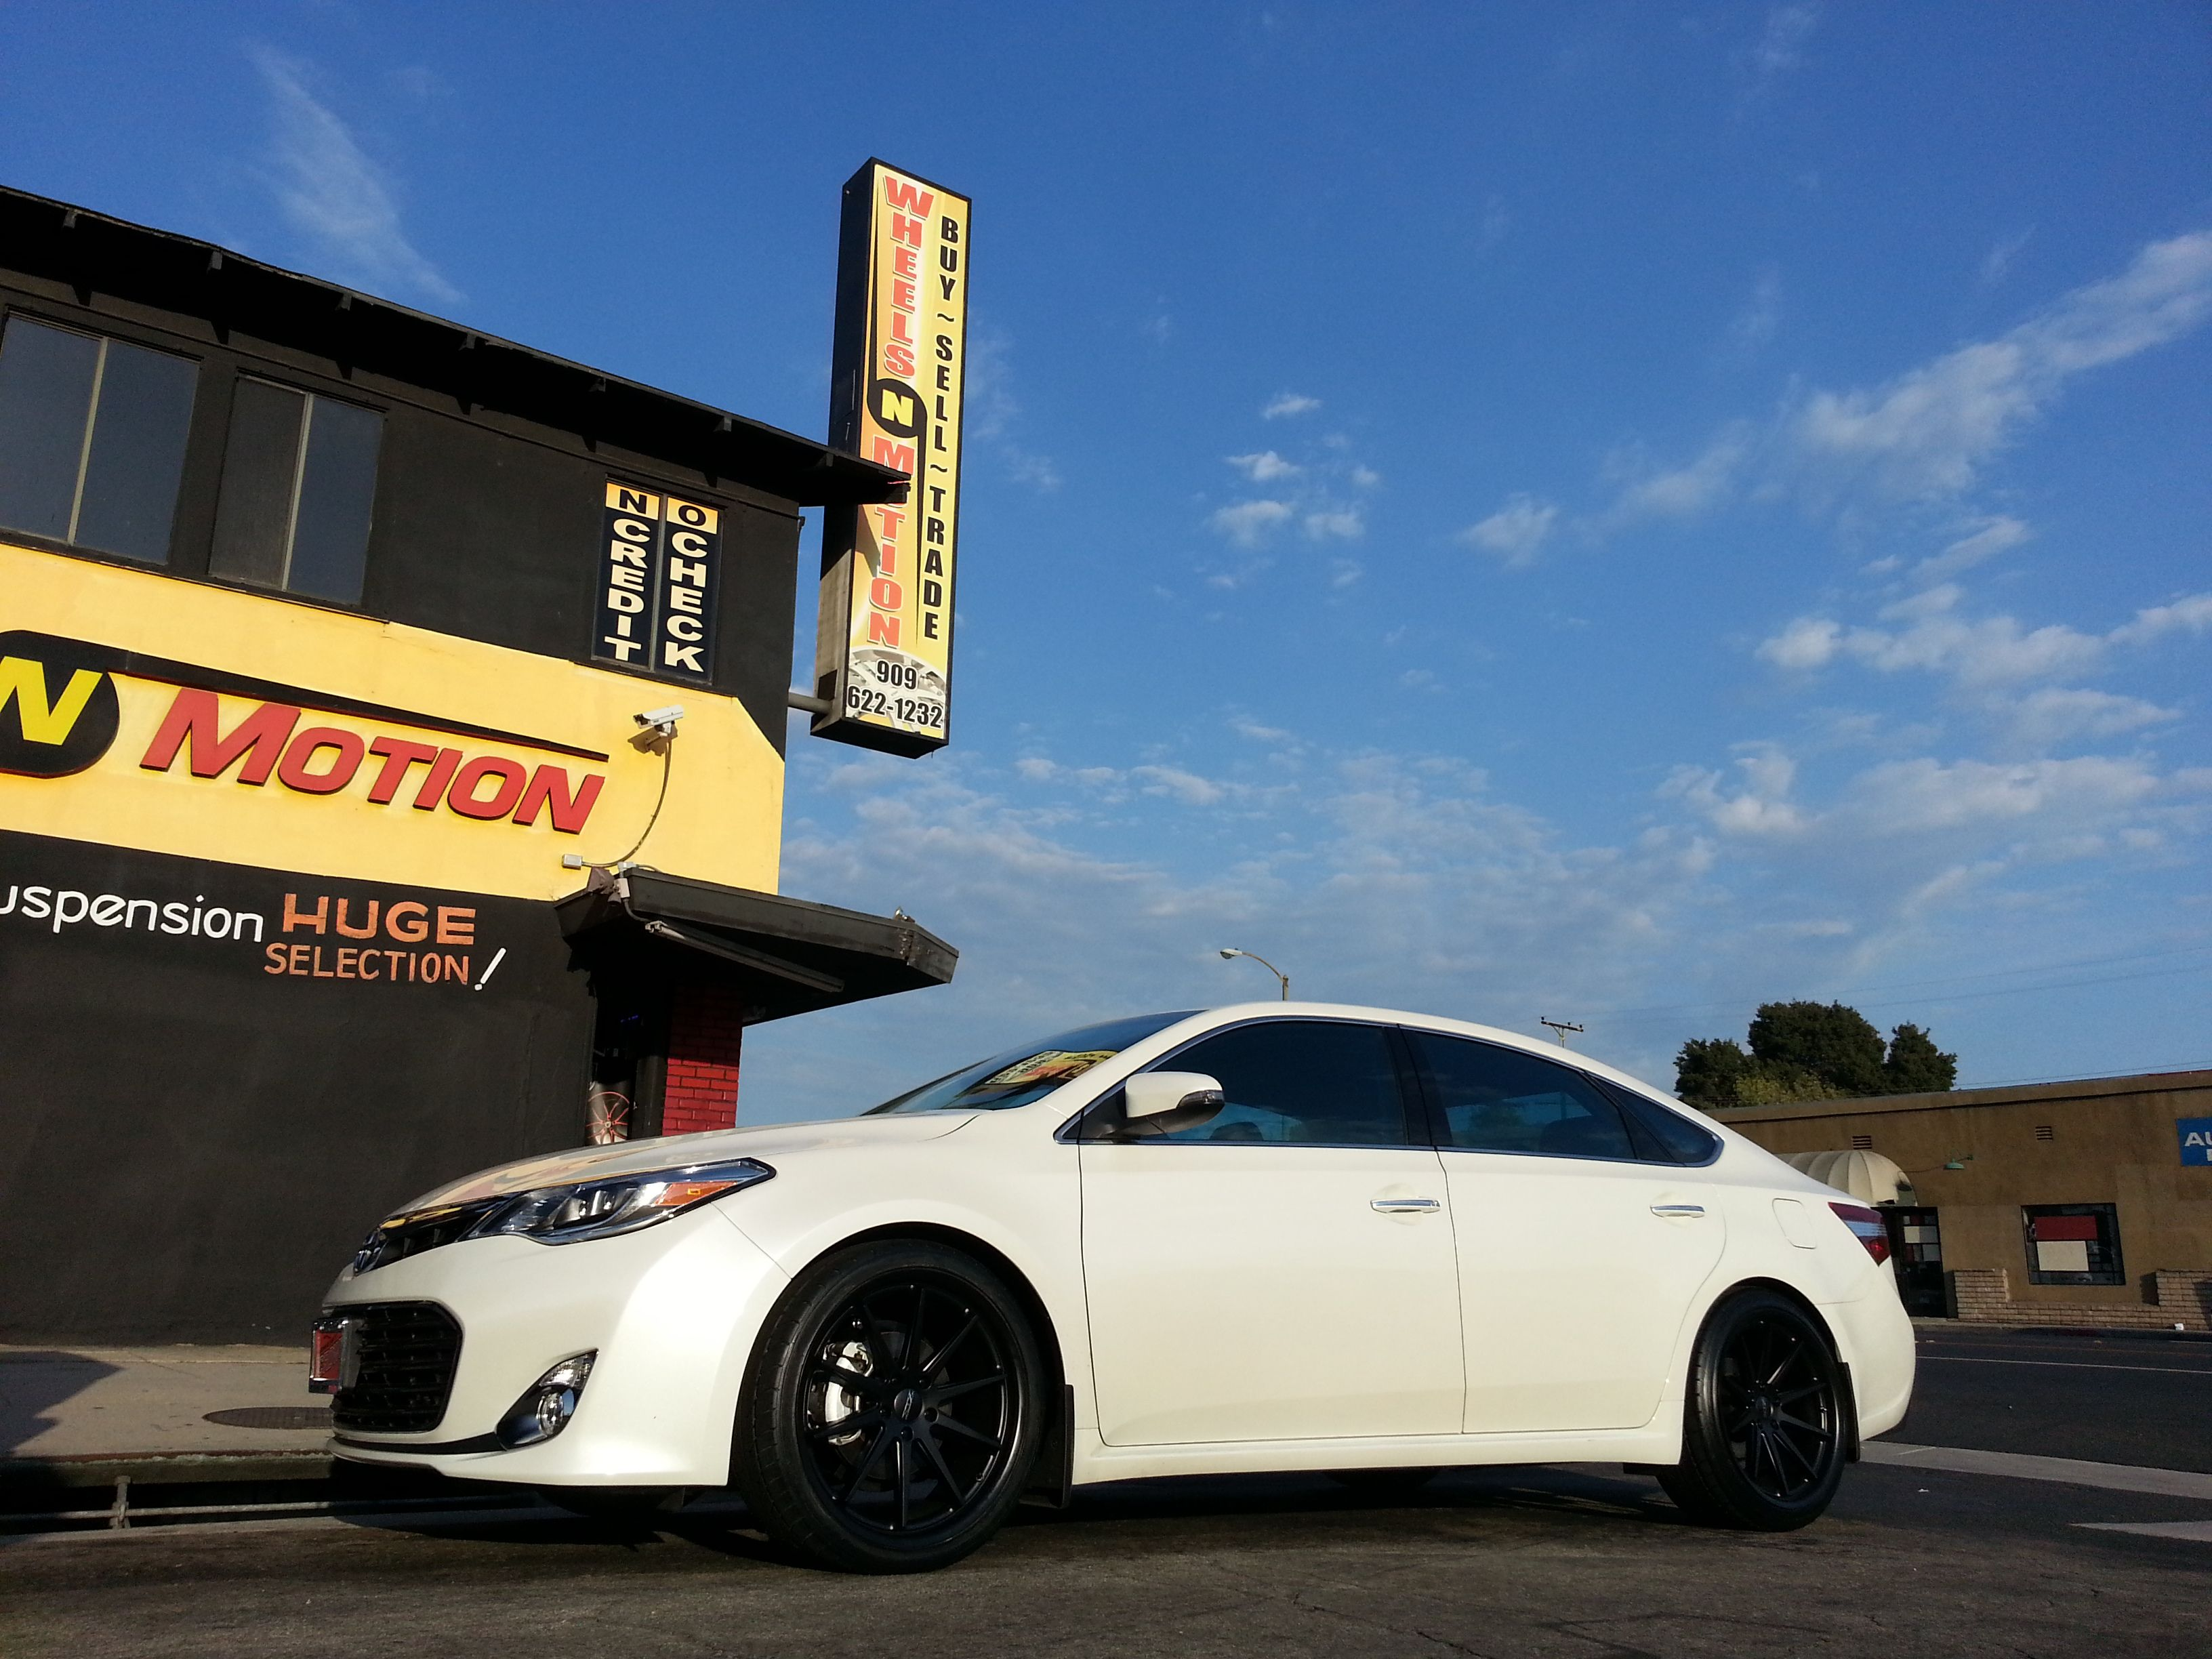 aad90dacb188962e142758e8dbfefddf Take A Look About 2010 toyota Avalon